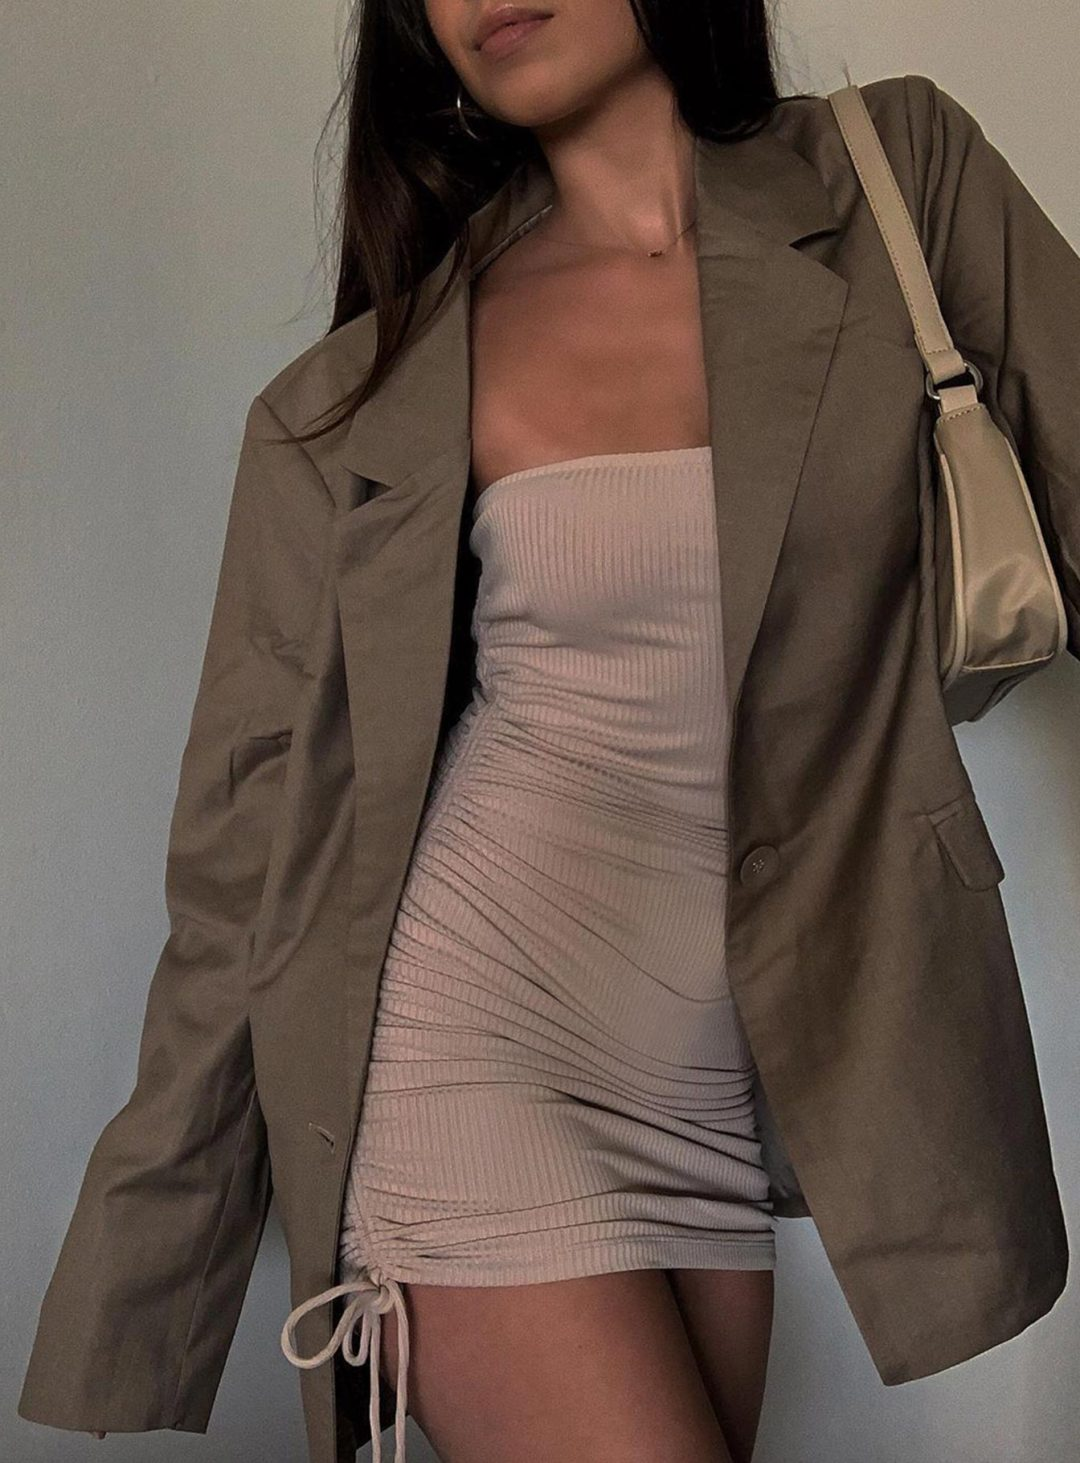 Khahki and olive green oversized blazer outfits